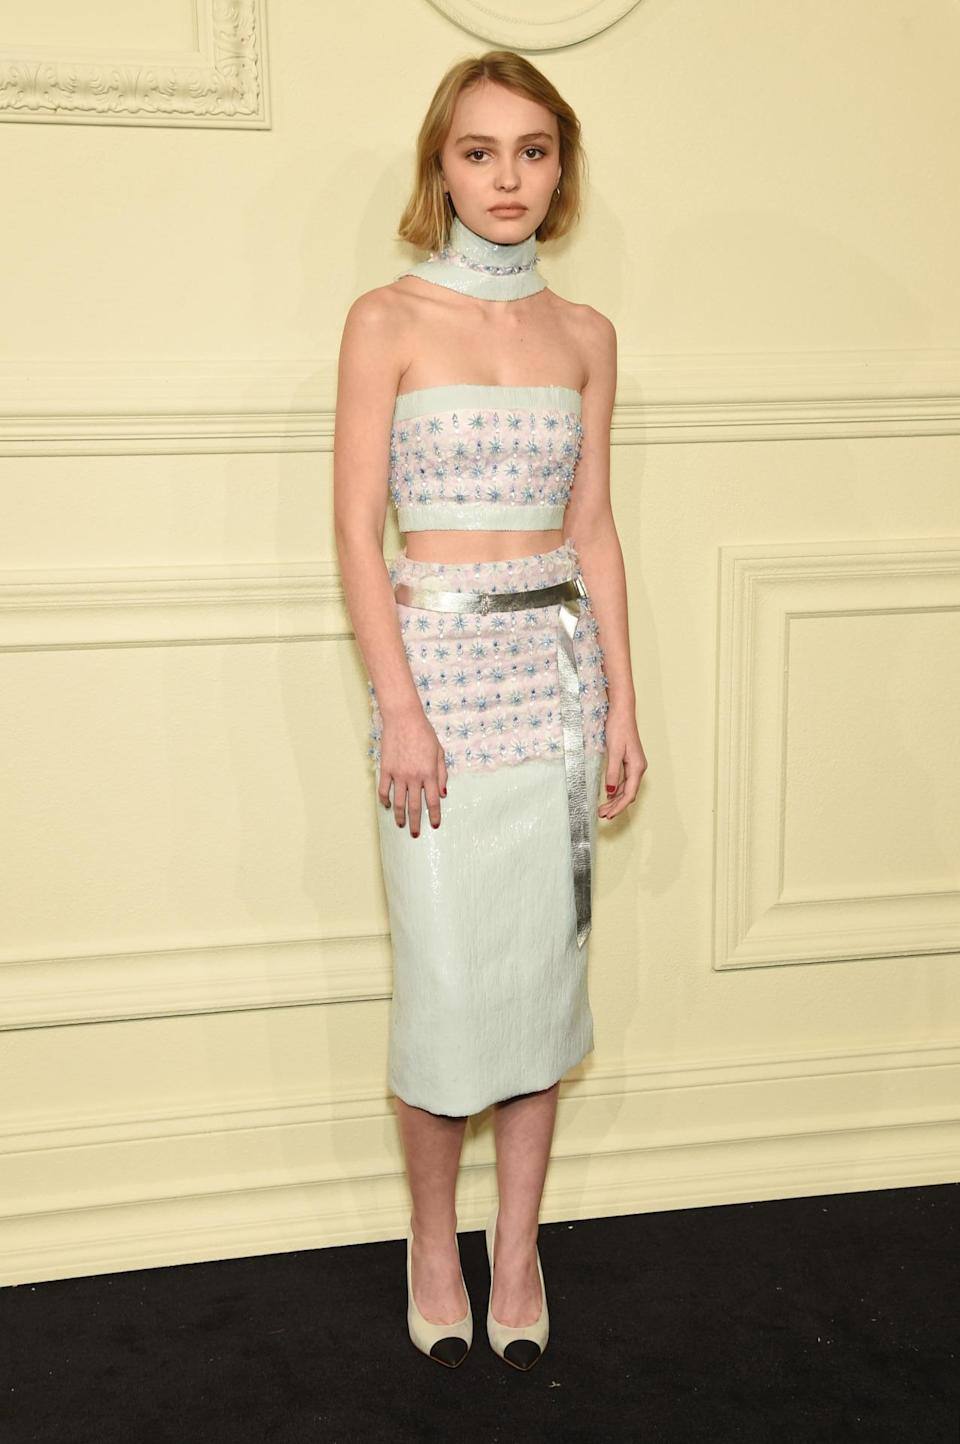 <p>Lily-Rose Depp, the 15-year-old daughter of Johnny Depp and Vanessa Paradis, made her fashion show debut in an embellished midriff-baring top and pencil skirt by Chanel. She attended the show with her mother and younger brother, Jack.</p>